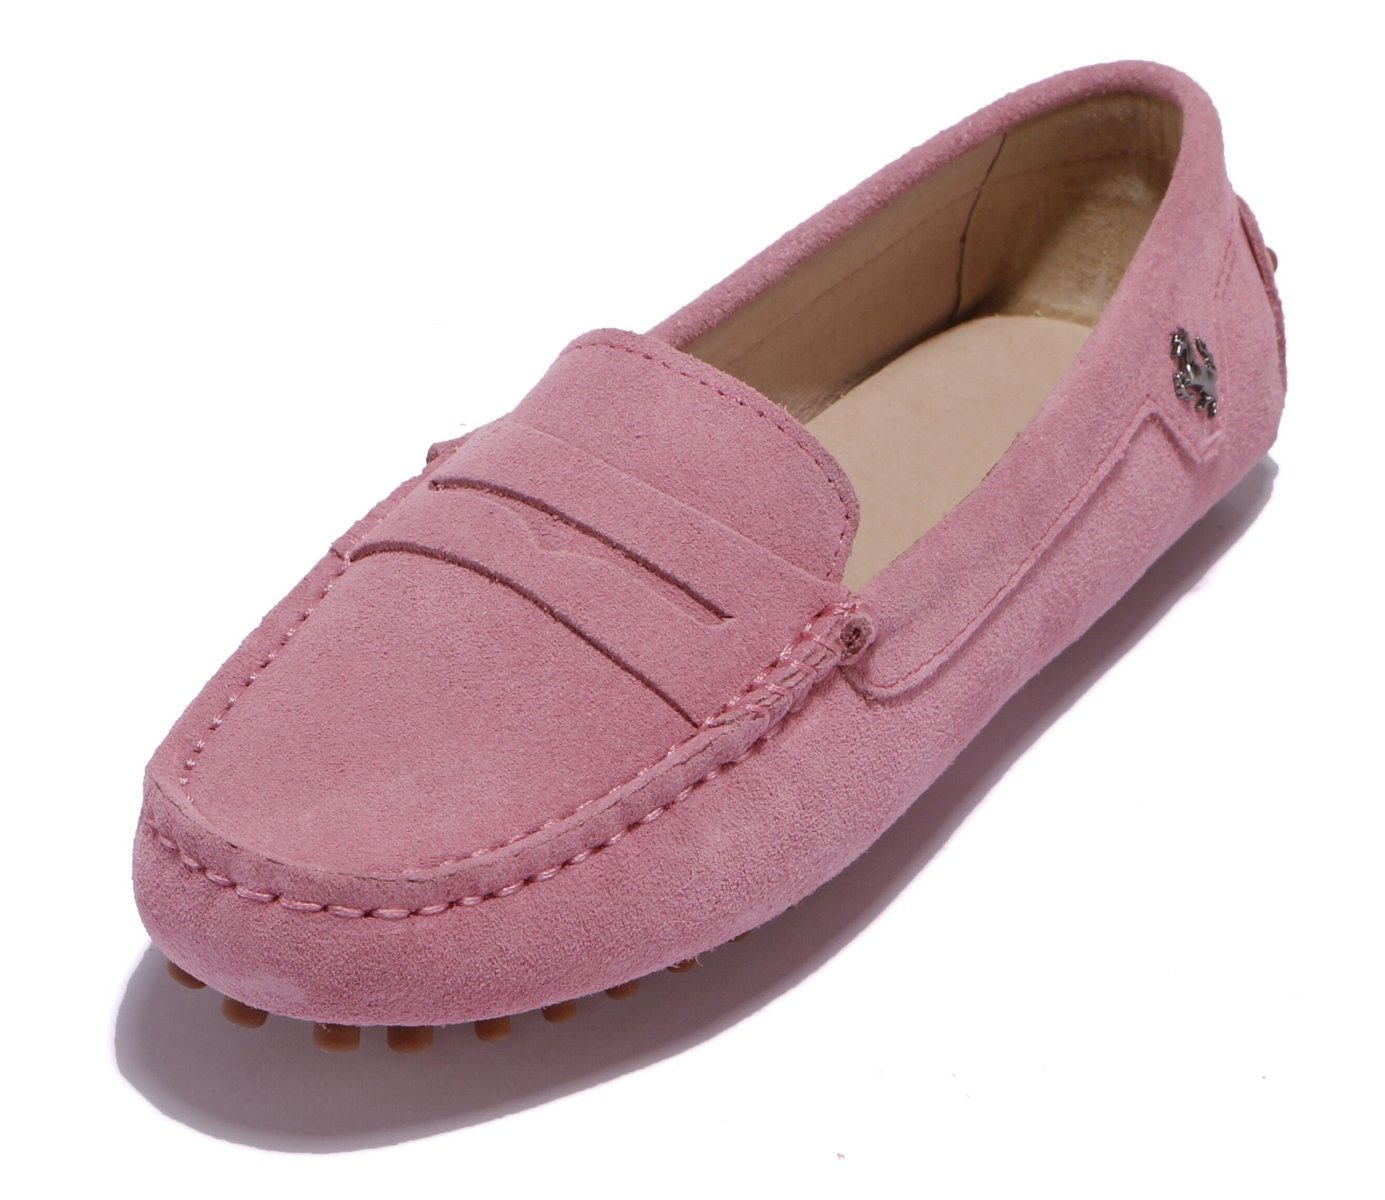 Minitoo , B00YFDQGY2 16023 Bout fermé , femme Pink-Suede 7f1a1ca - latesttechnology.space